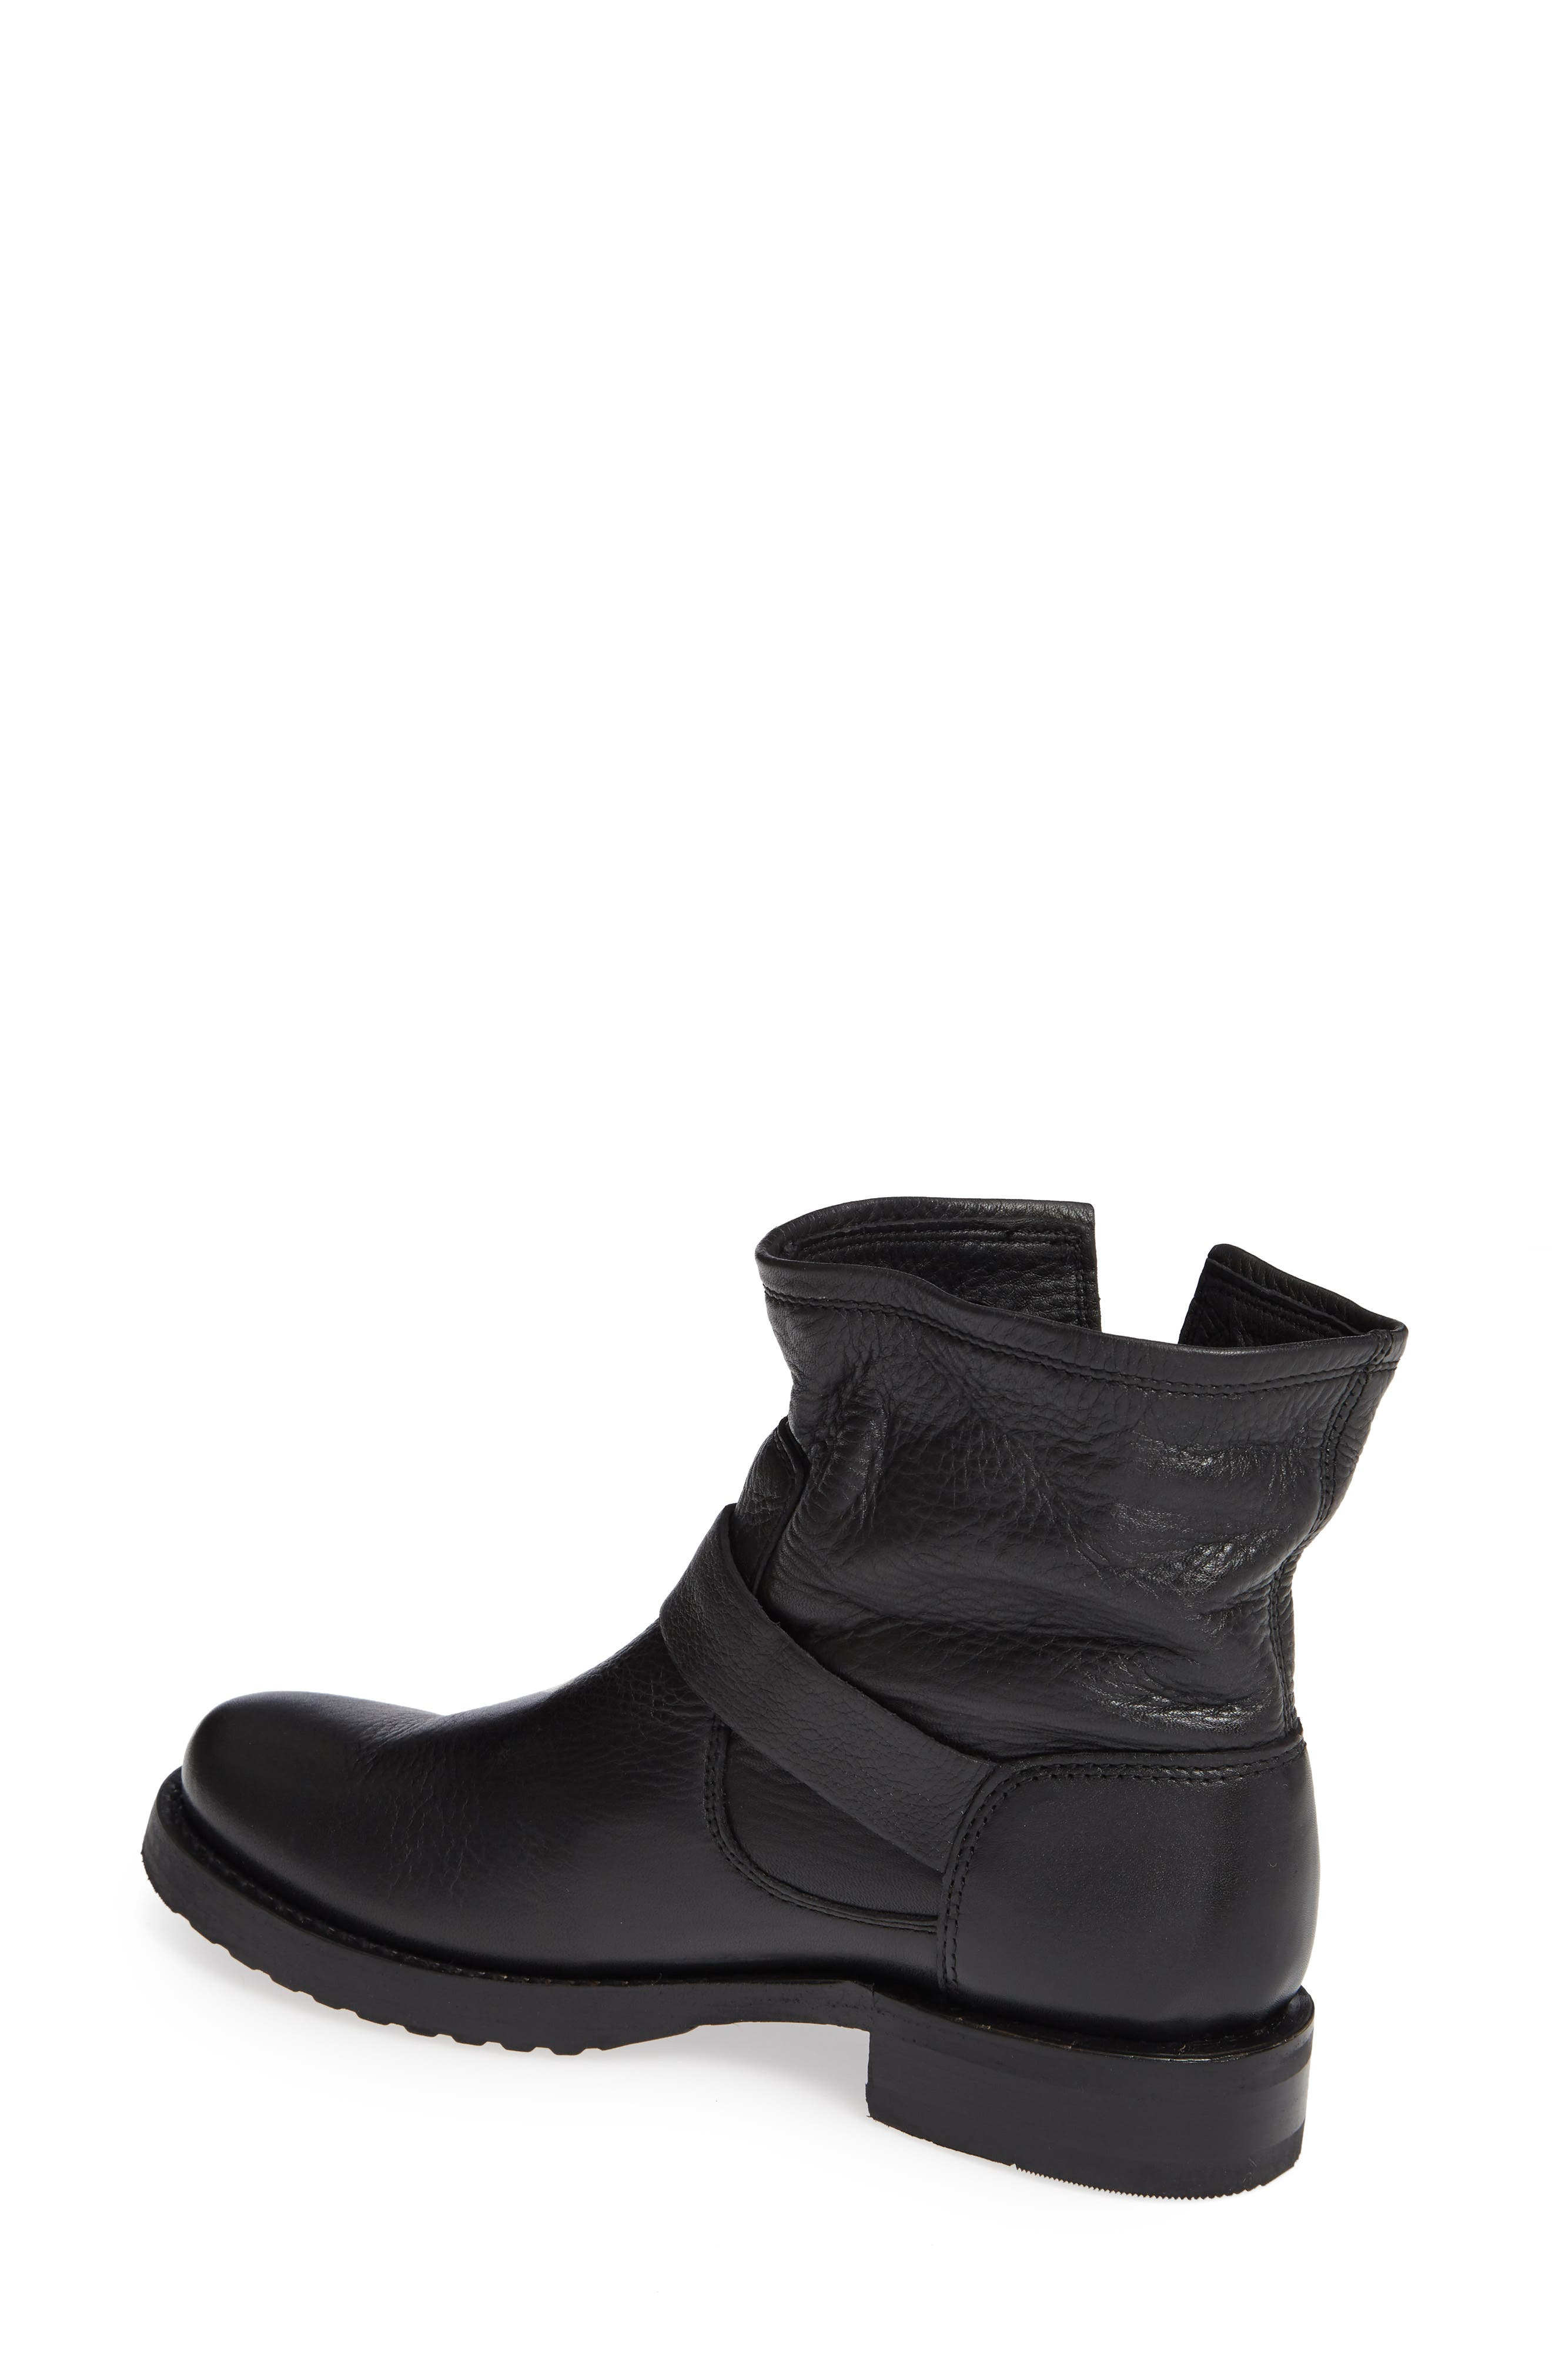 FRYE, Veronica Bootie, Alternate thumbnail 2, color, BLACK LEATHER